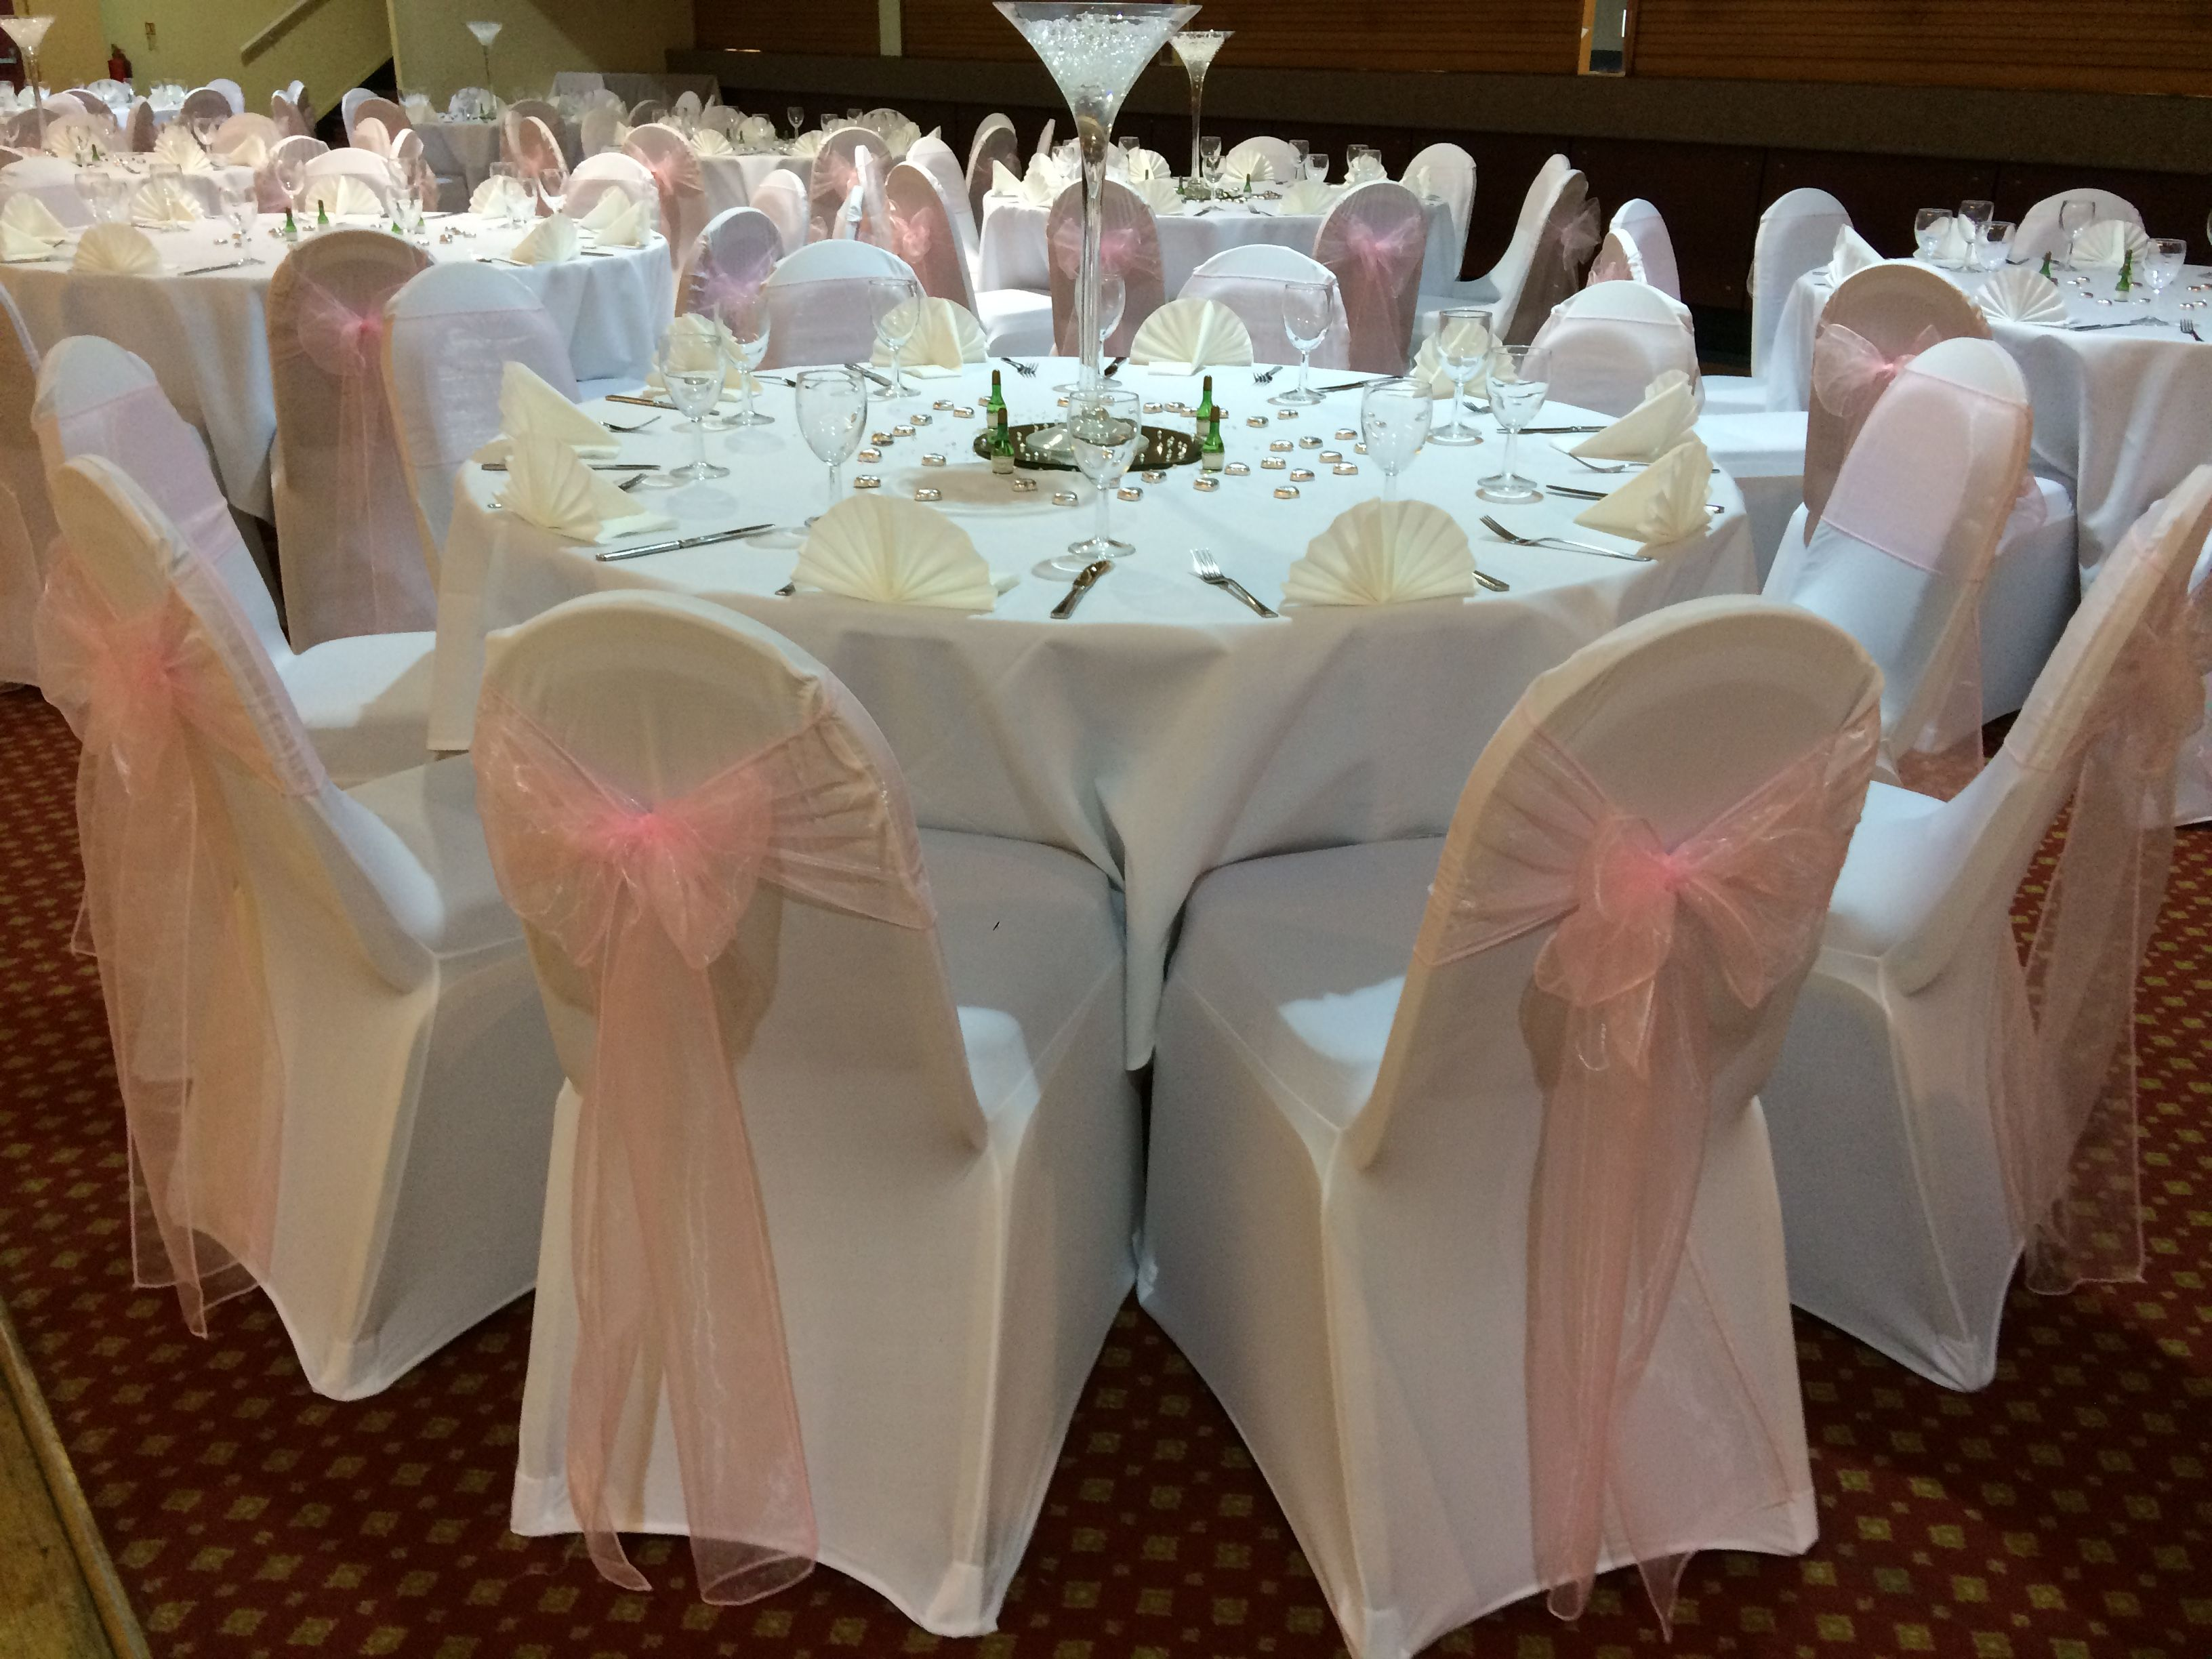 chair covers for weddings basingstoke outdoor dining cushions sunbrella white with pale pink organza sashes at a wedding the aberavon beach hotel venue dressed by affinity event decorators